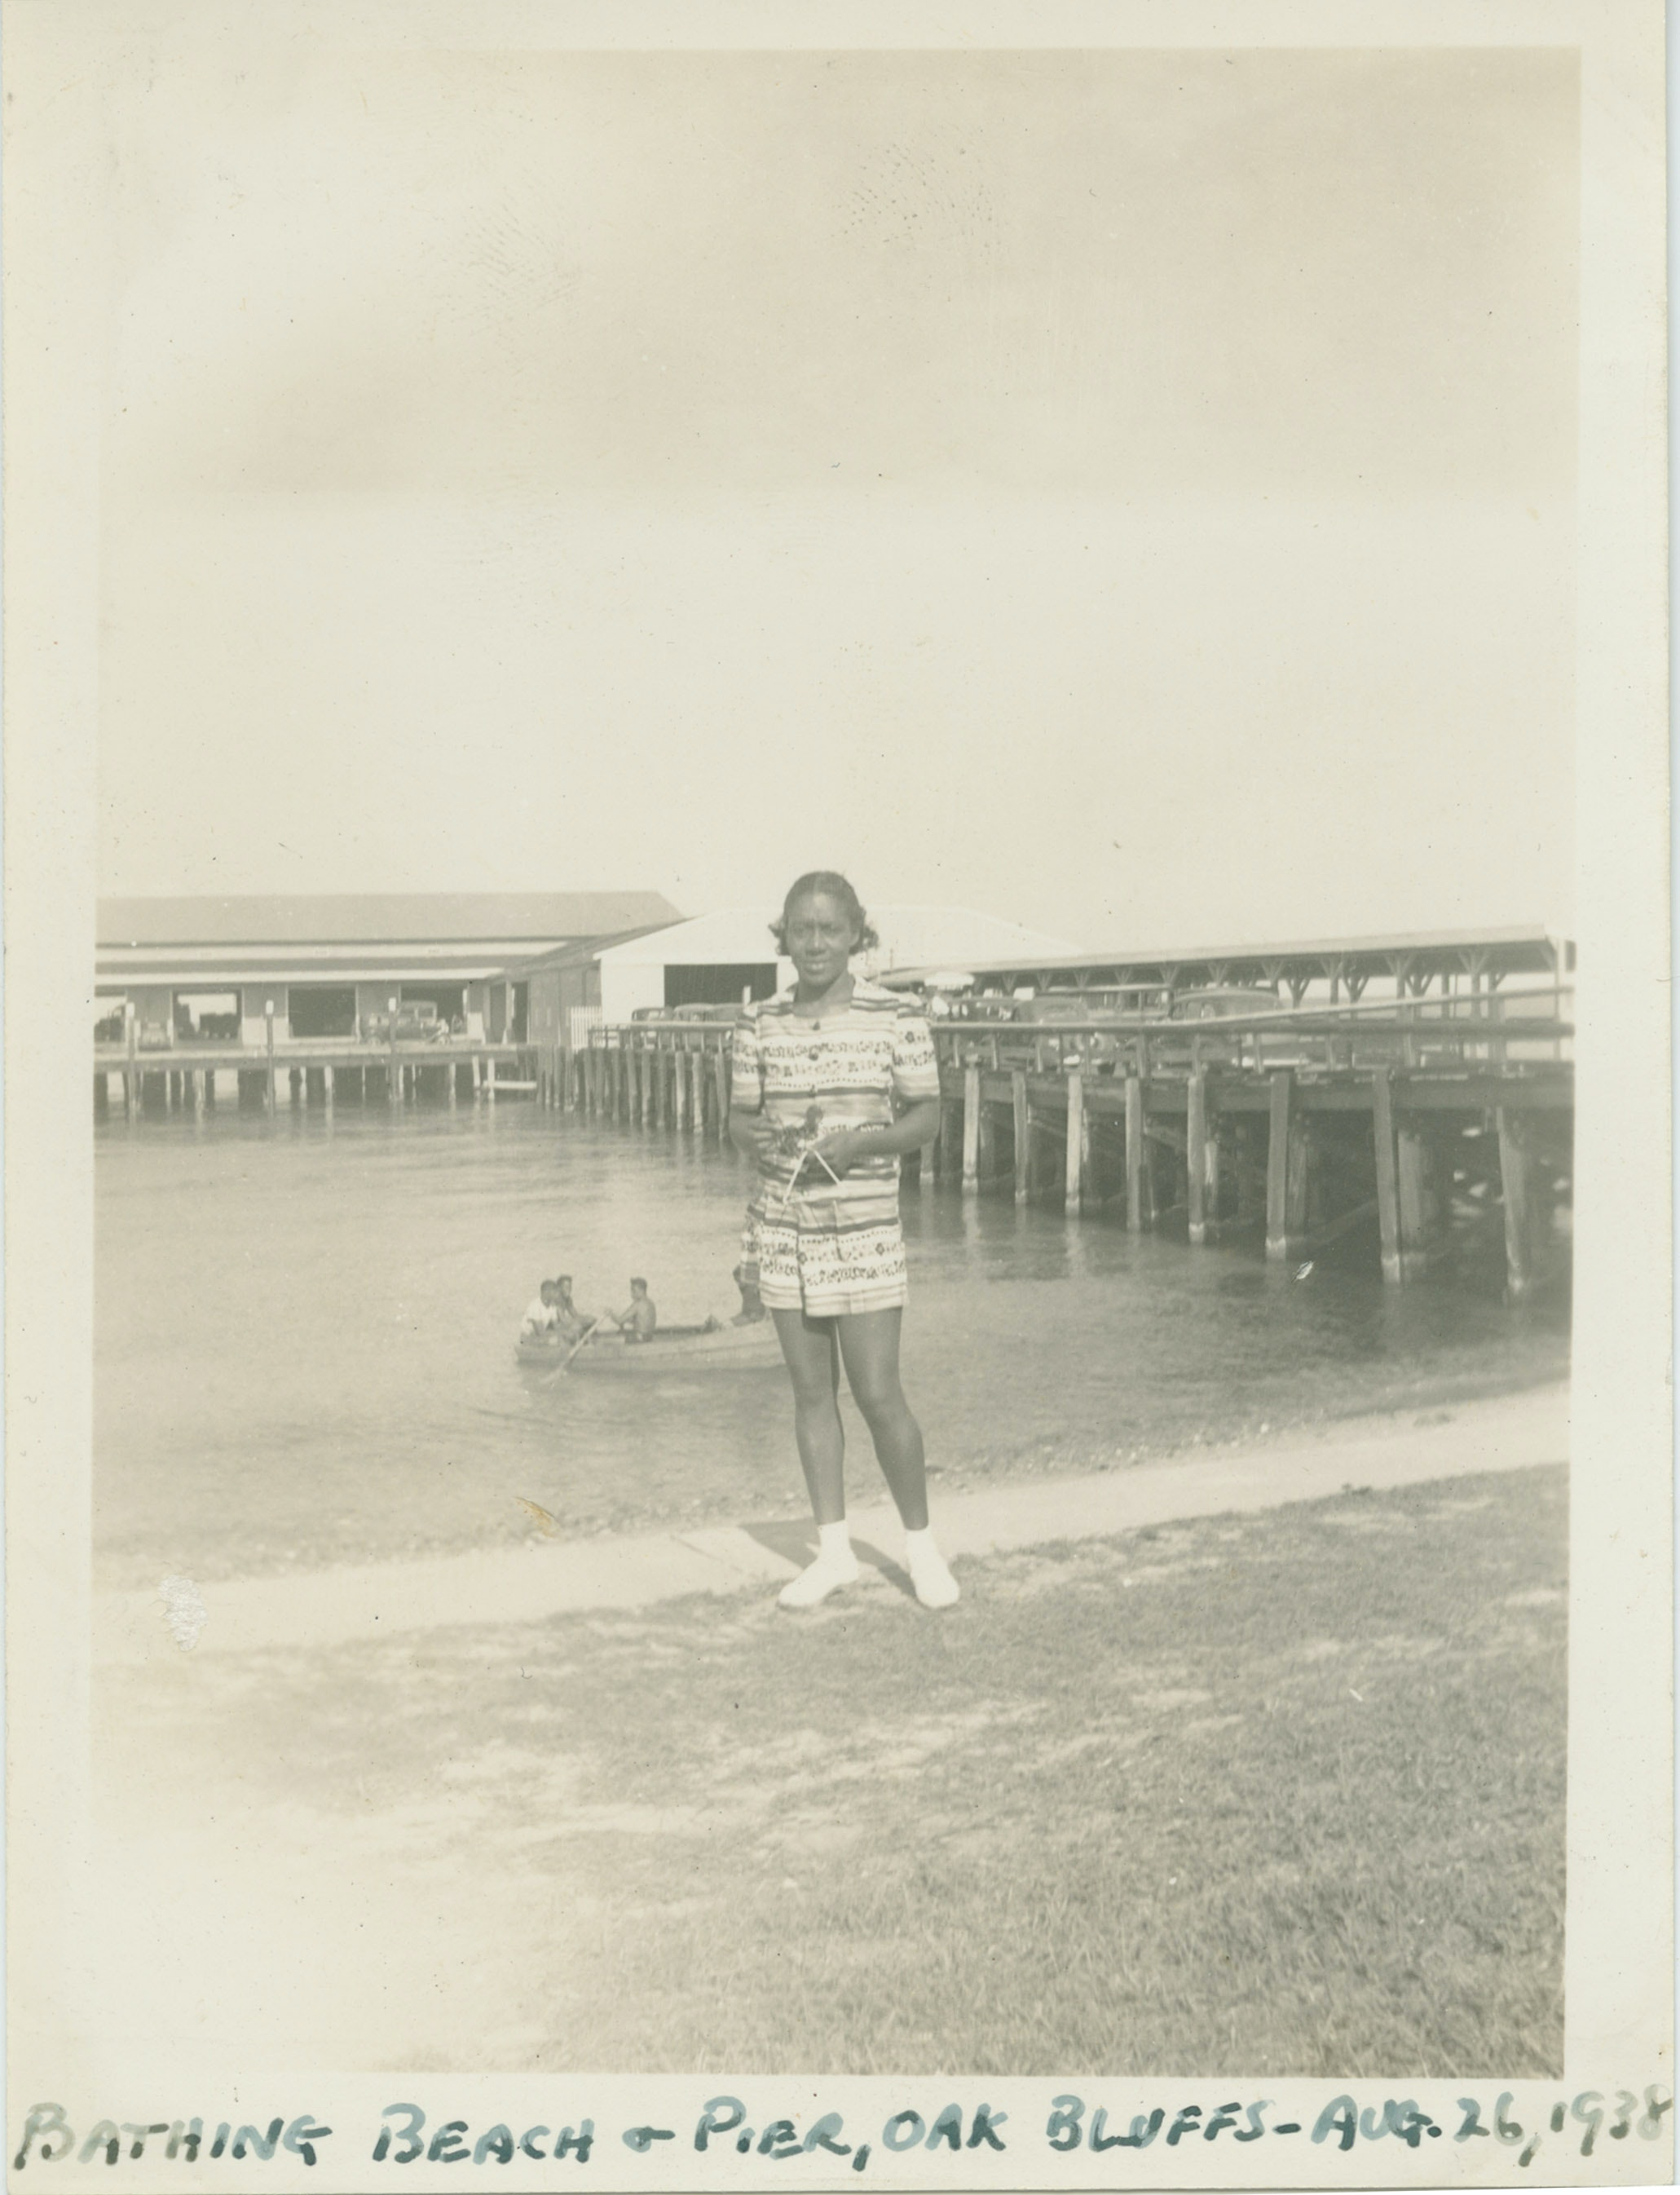 Dorothy West standing in front of a pier at Oak Bluffs beach on Martha's Vineyard